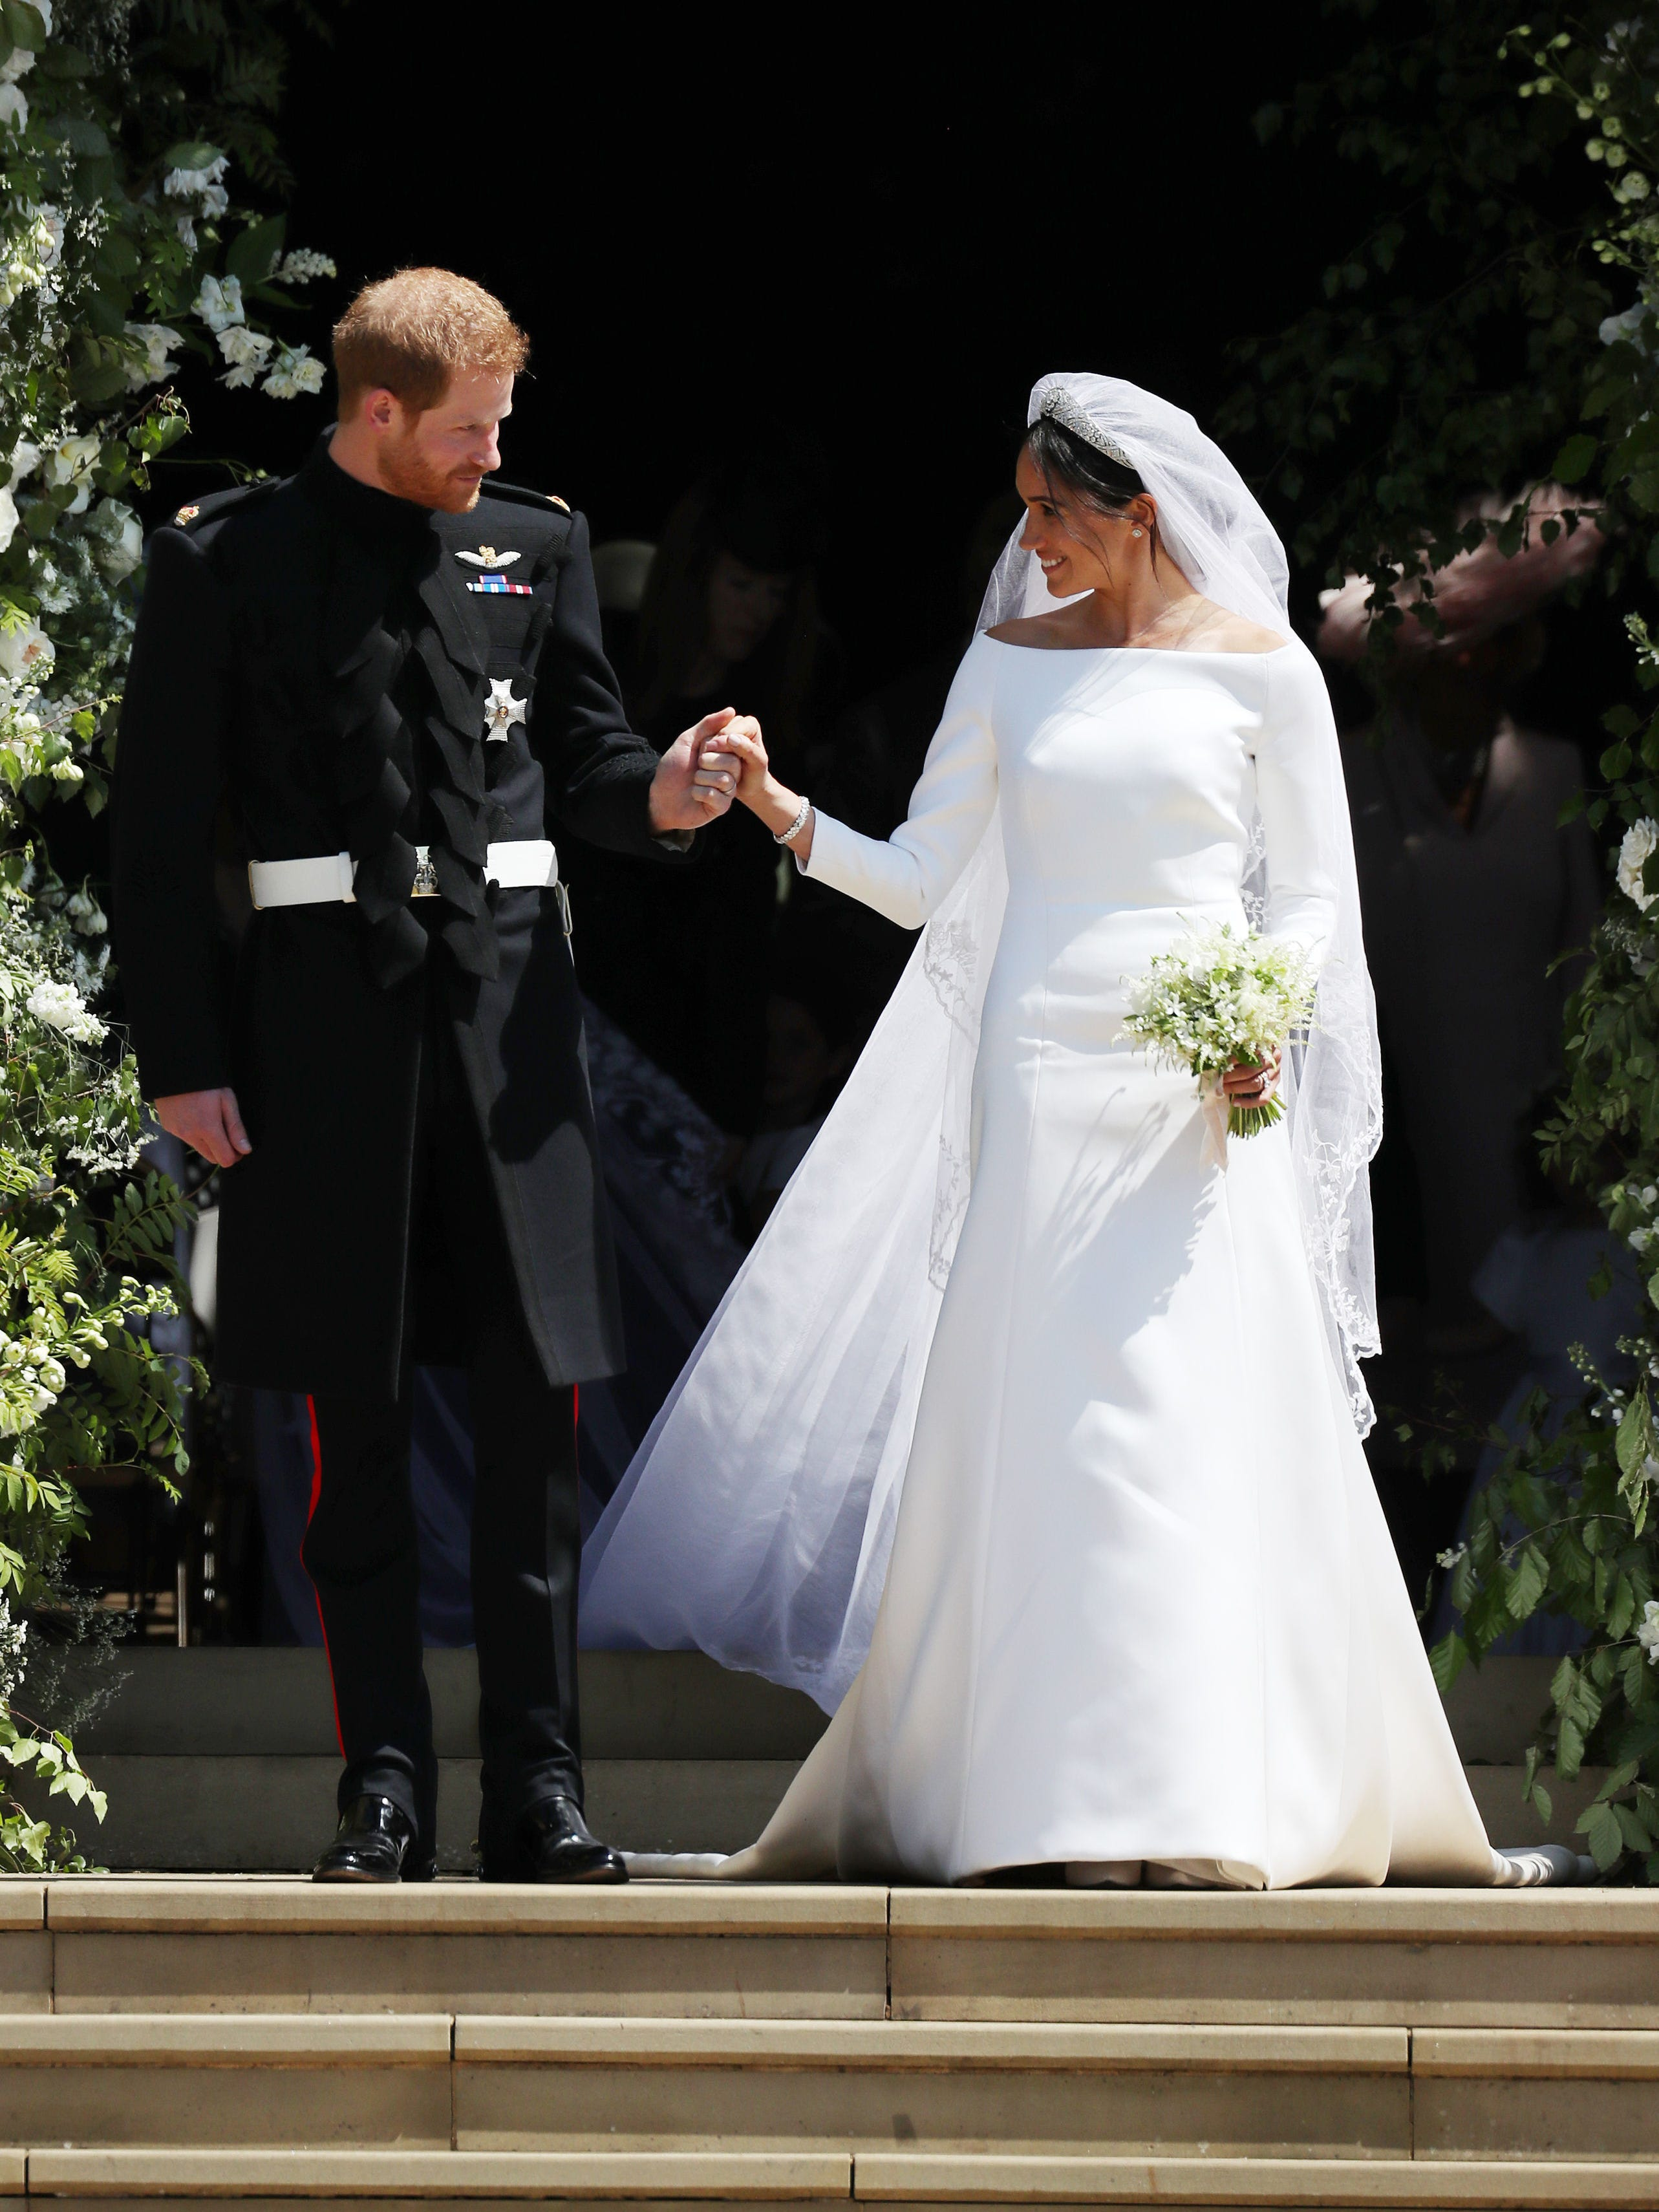 Meghan Markle S Wedding Dress Is Givenchy See The Stunning Gown